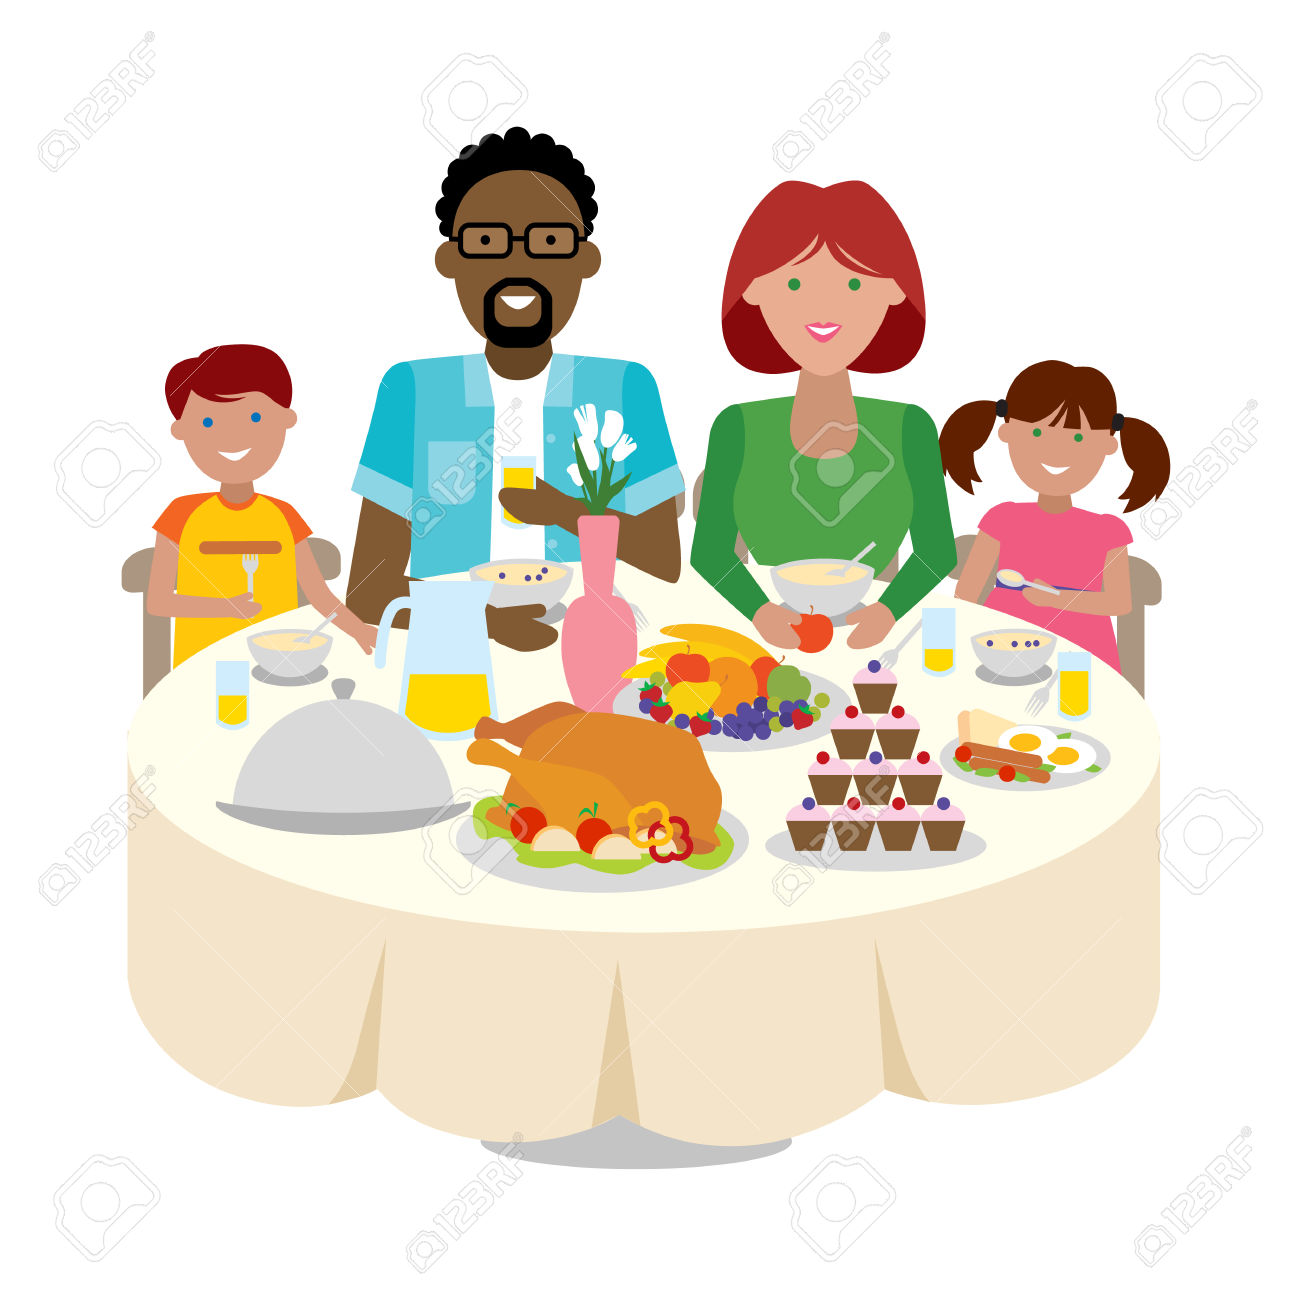 Celebration dinner clipart black and white download Family Dinner Table Clipart | Free download best Family Dinner Table ... black and white download